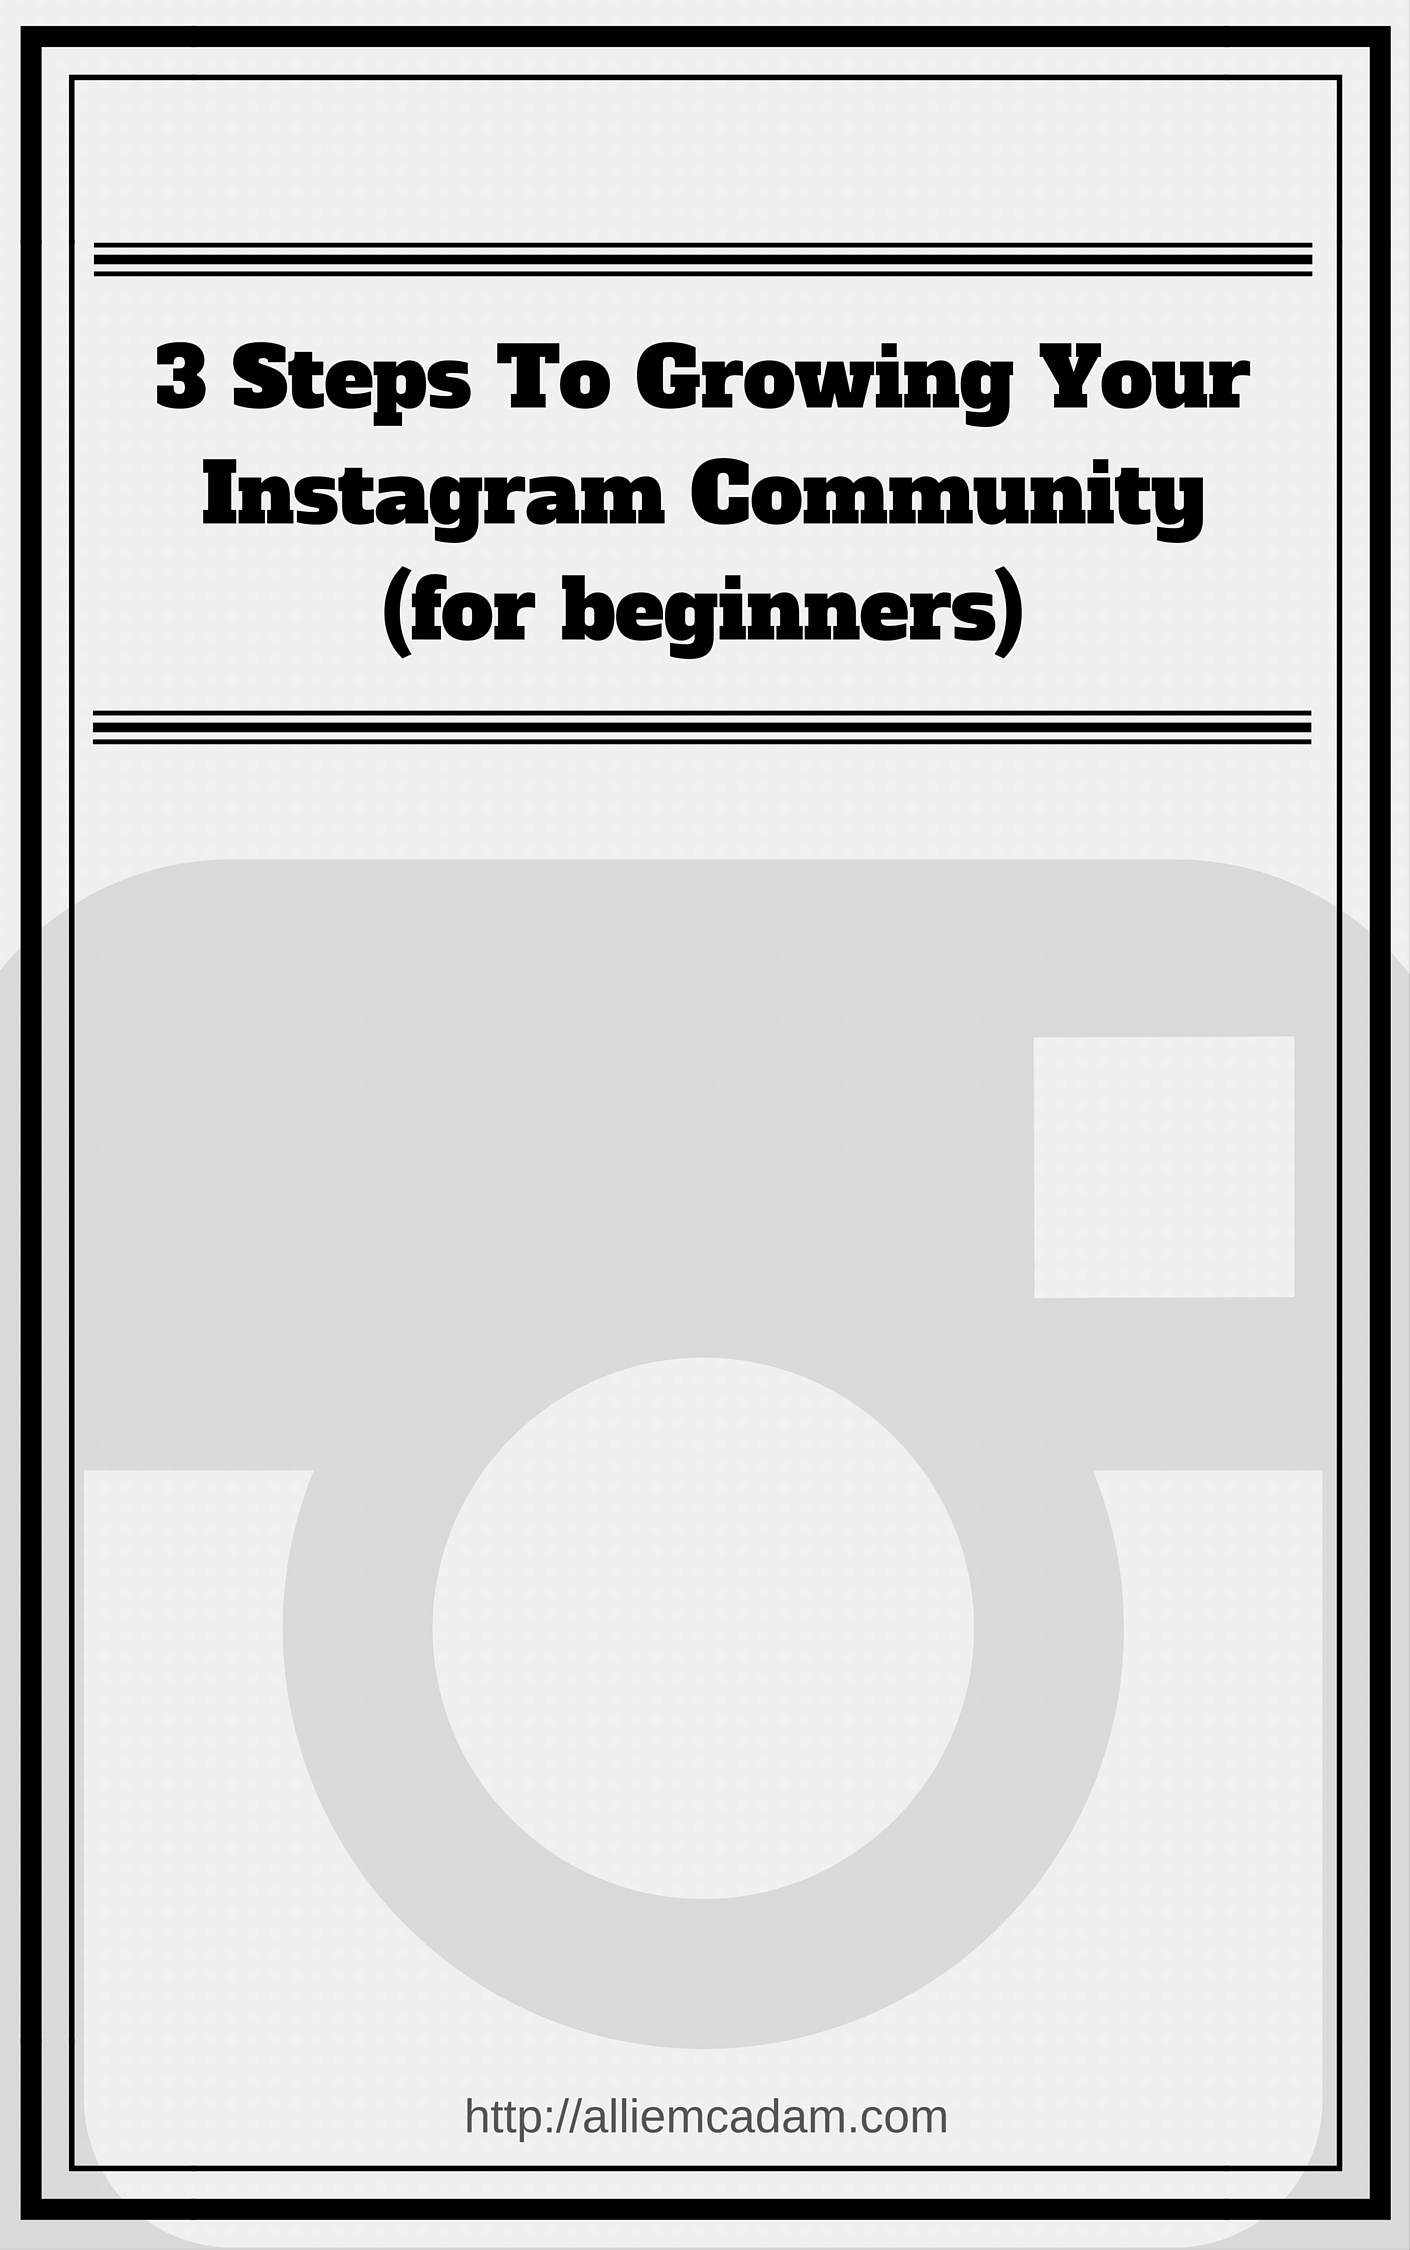 Instagram Free Guide For Growing Your Community